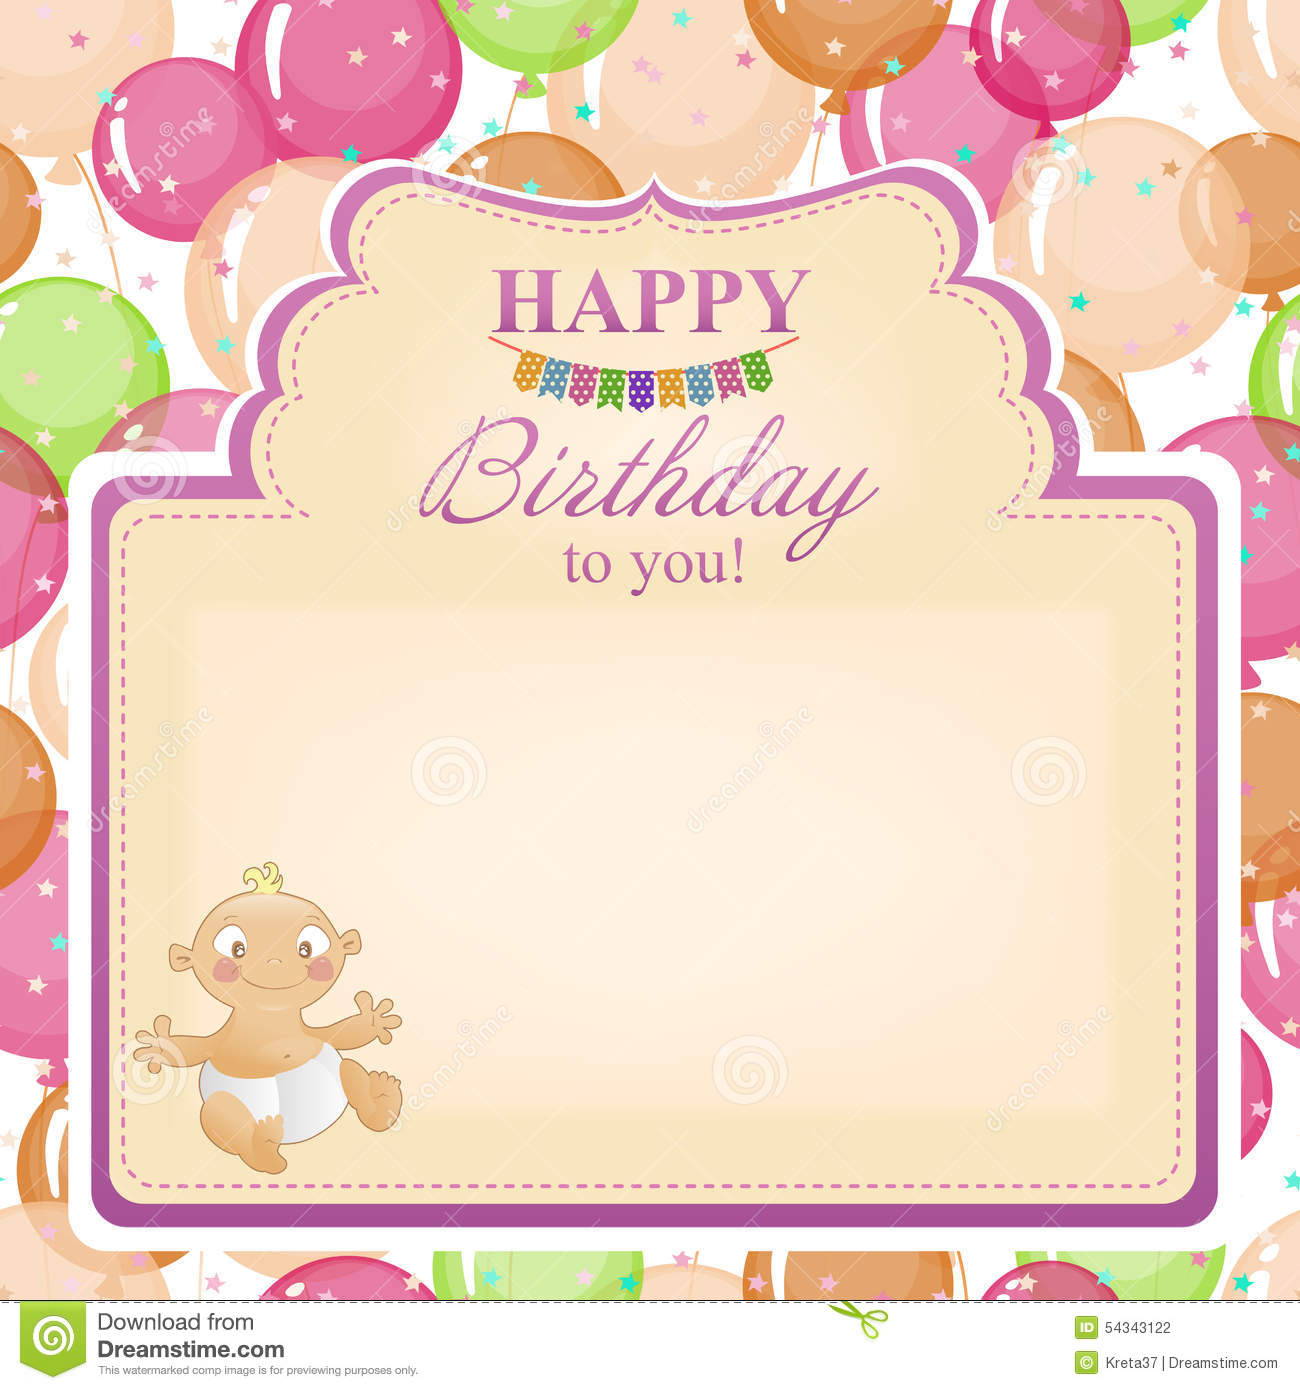 birthday background for baby girl ; childrens-congratulatory-background-birthday-girls-postcard-greetings-balloons-little-girl-54343122